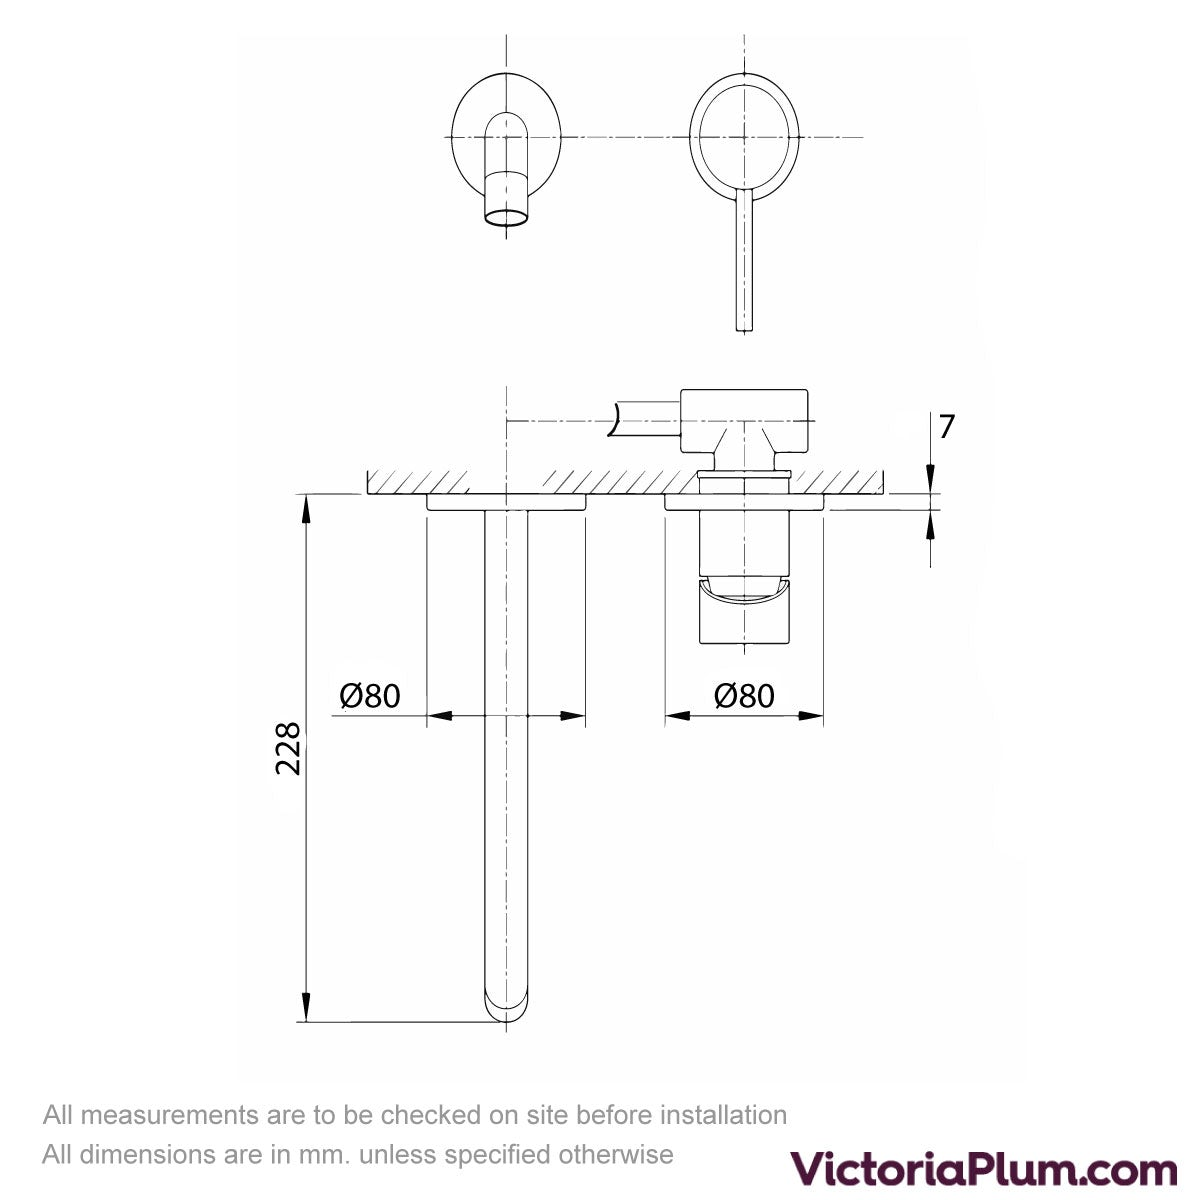 Dimensions for Mode Spencer round wall mounted black bath mixer tap